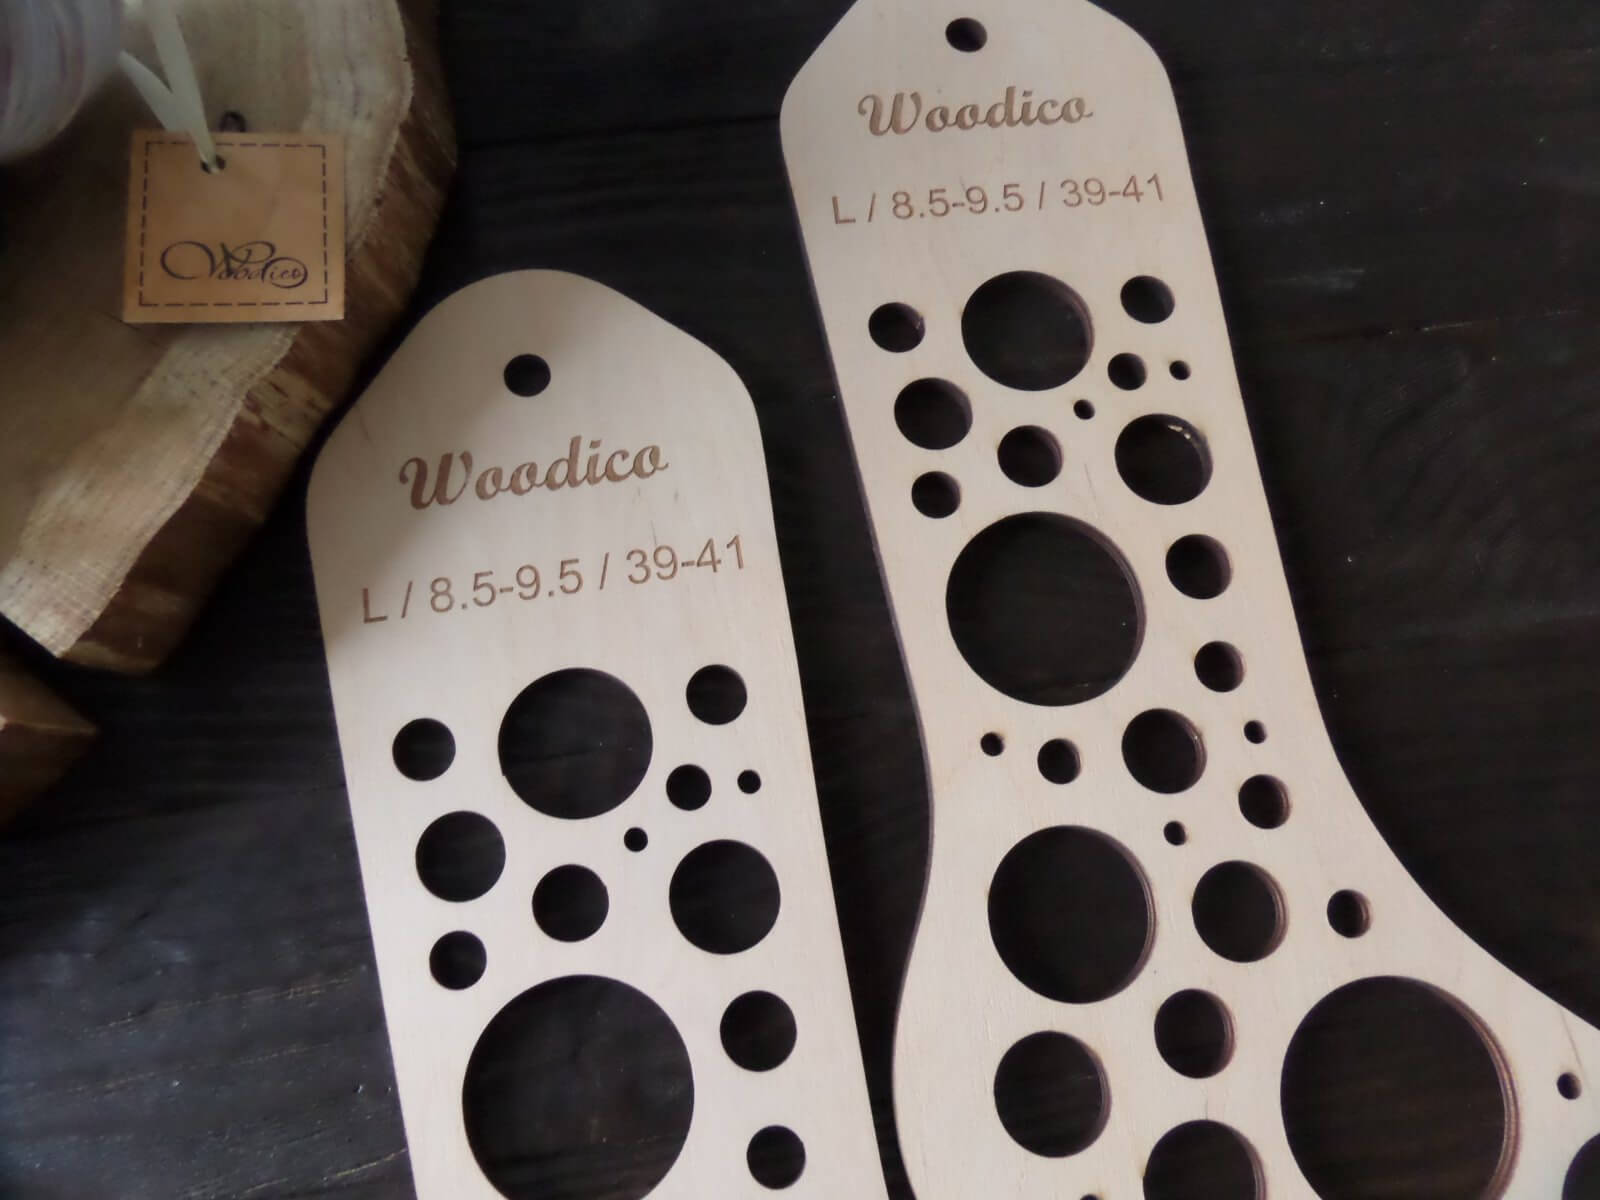 woodico.pro wooden sock blockers bubbles 1 - New product – Wooden sock blockers / Bubbles